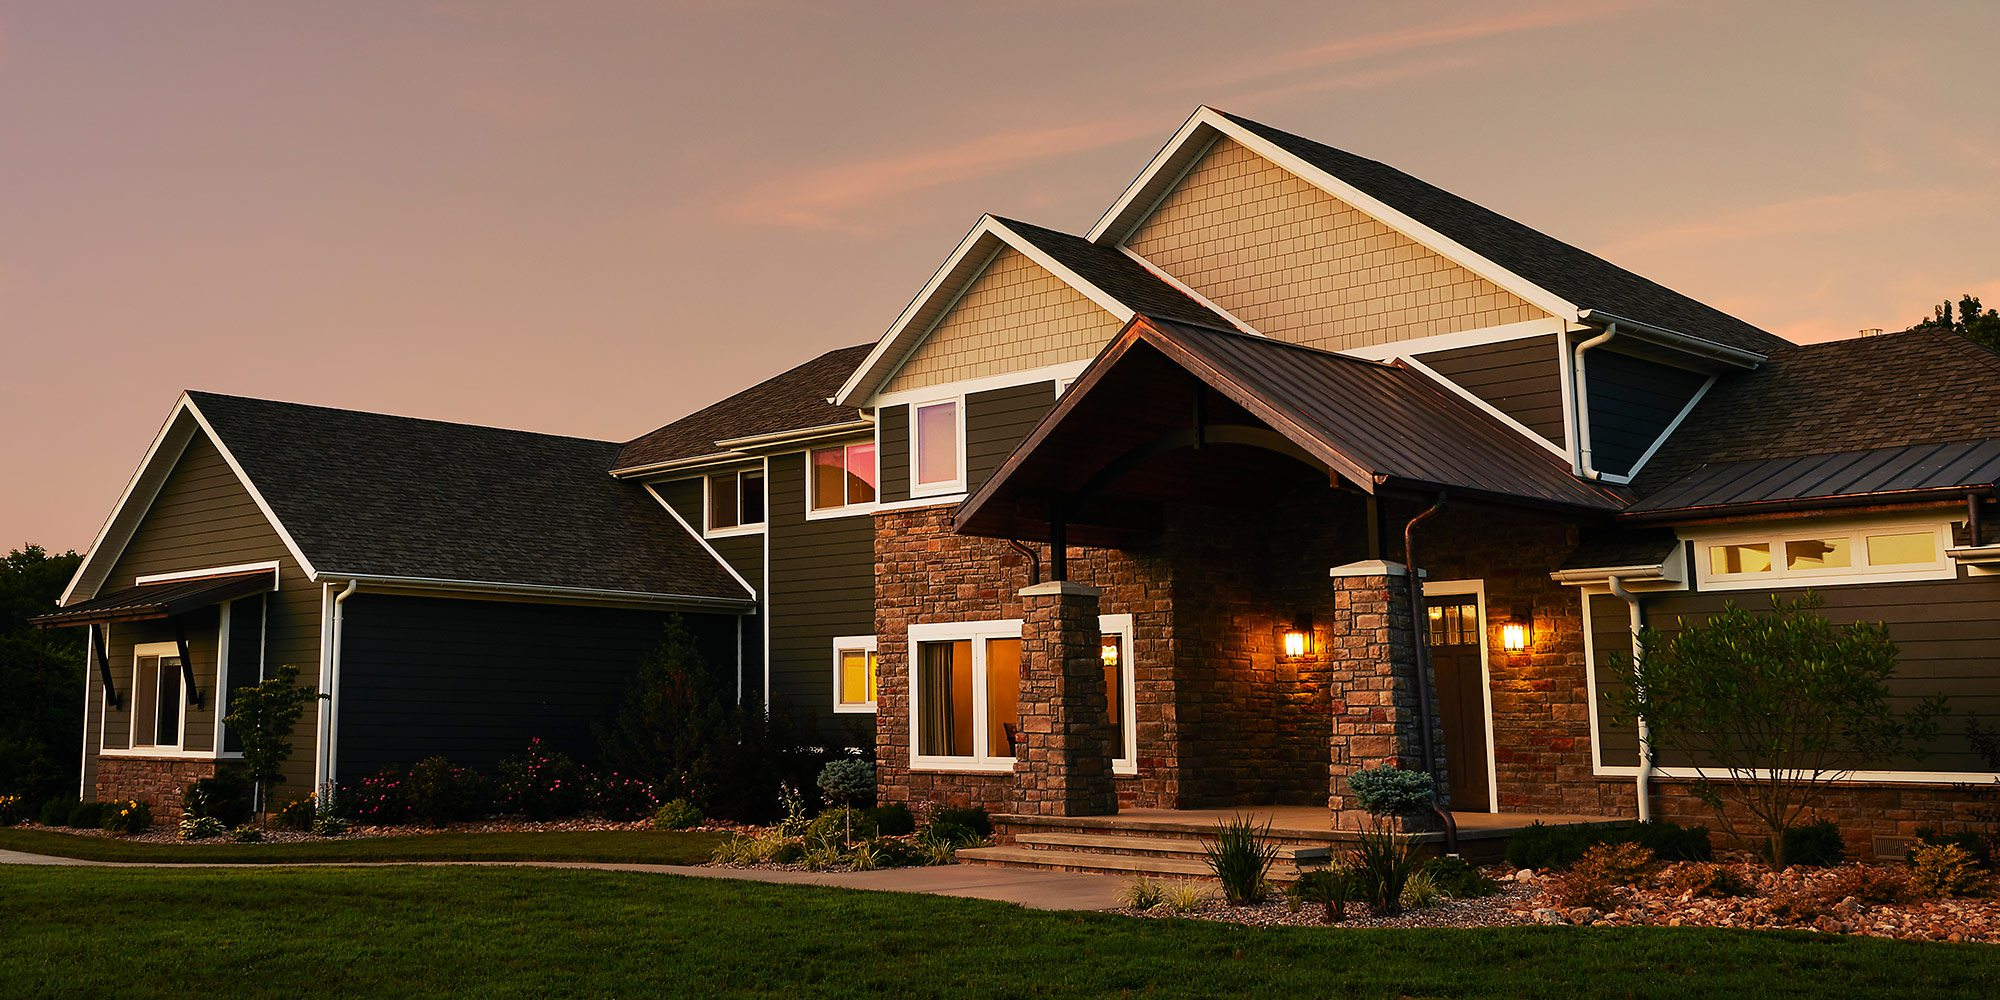 Timeless American Architecture, $500,000–750,000 Homes of the Year Winner Exterior